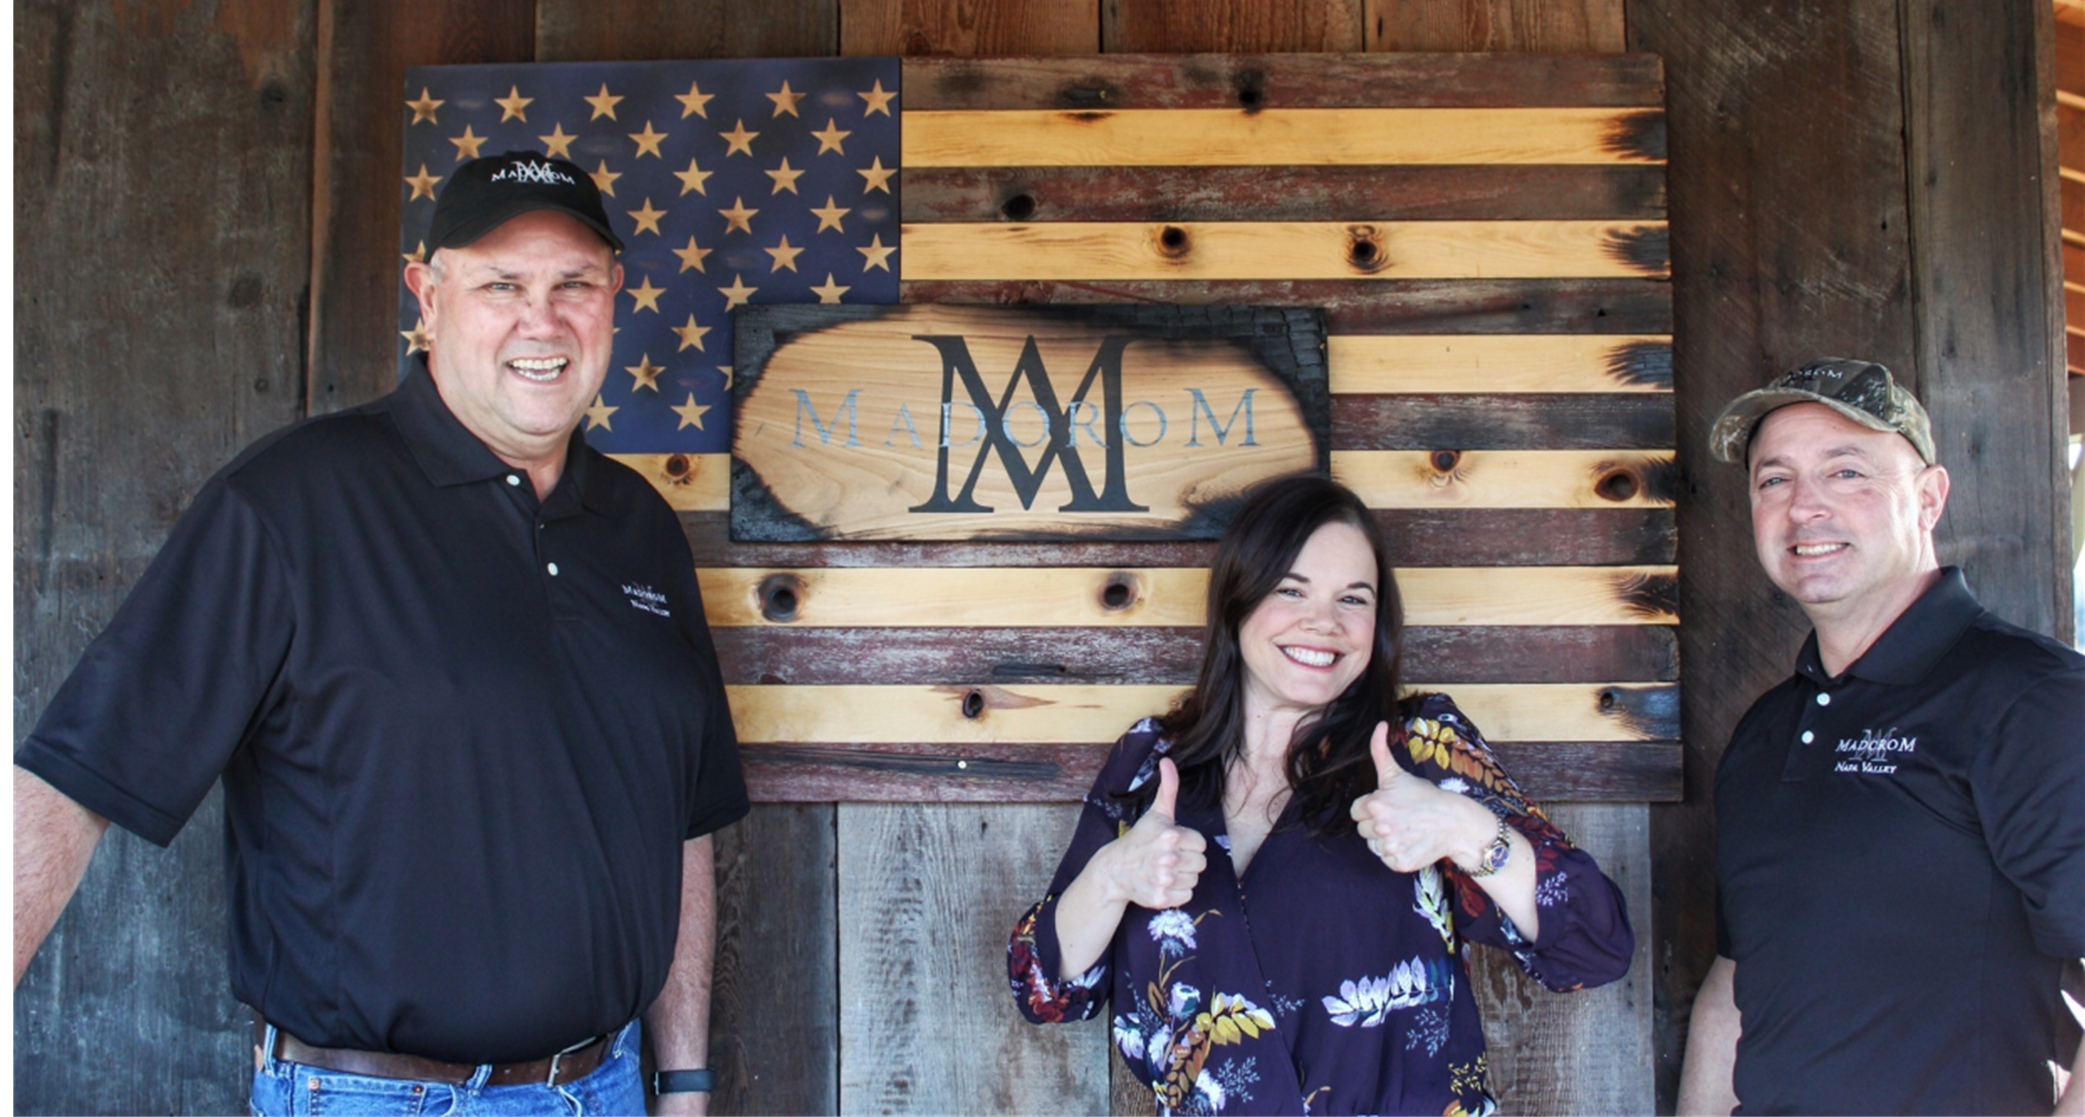 Andy & Marissa welcome you to MadoroM Vineyards